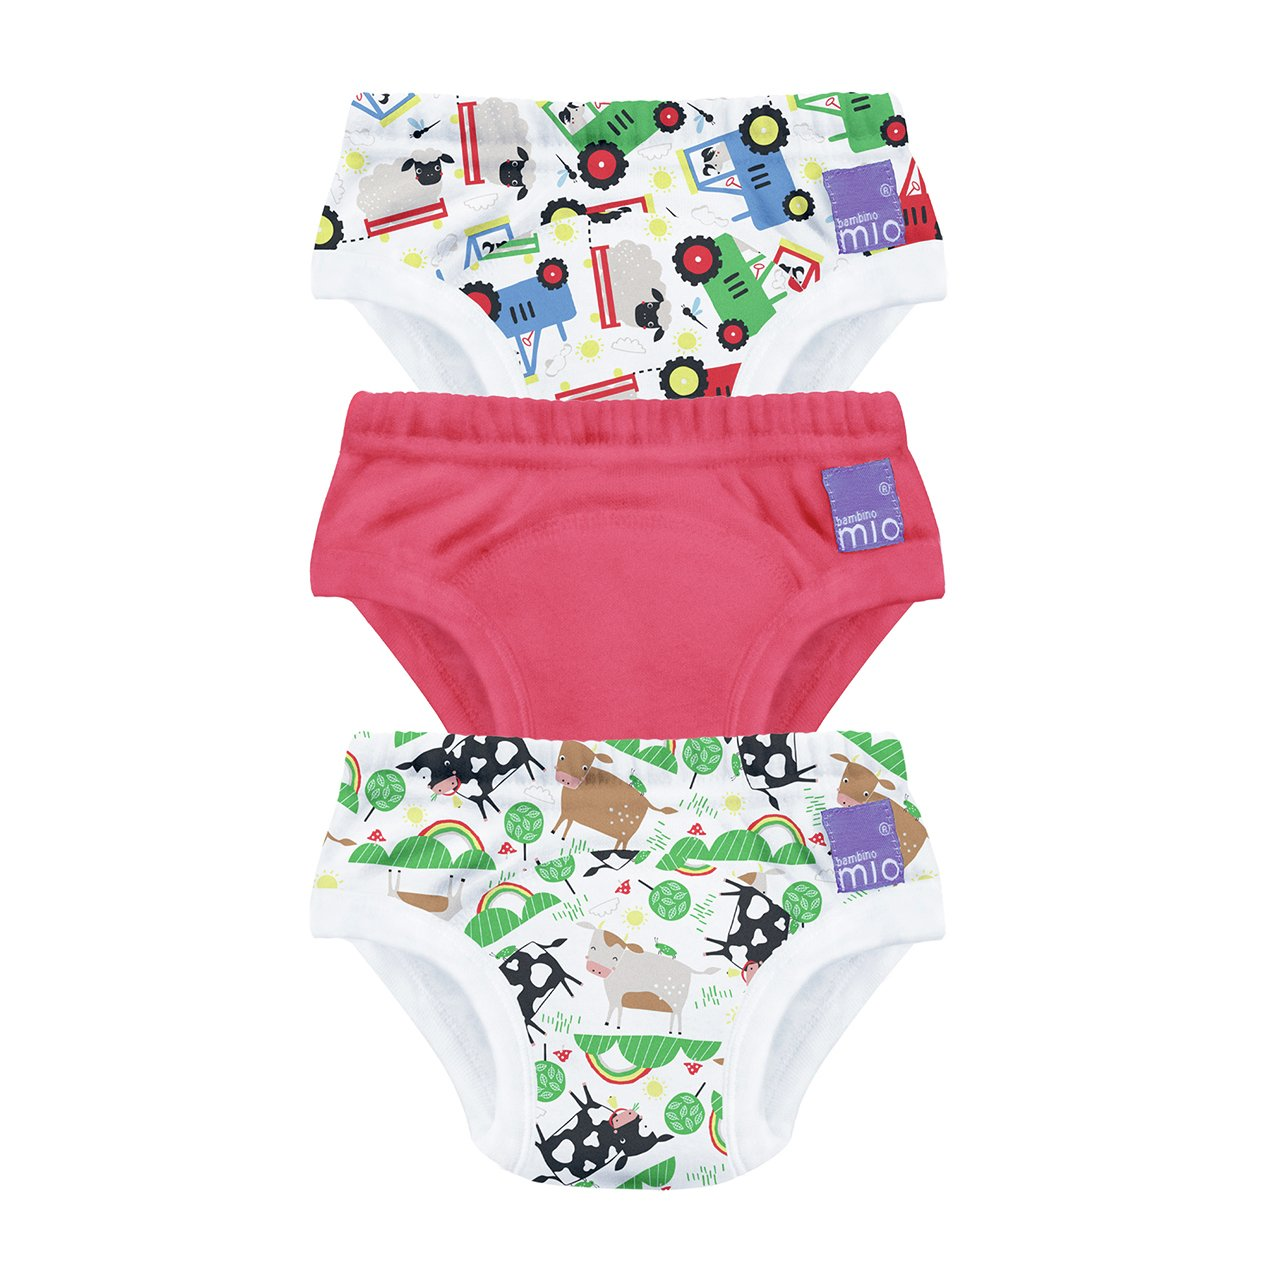 Bambino Mio Potty Training Pants  3 Pack - 2-3 years